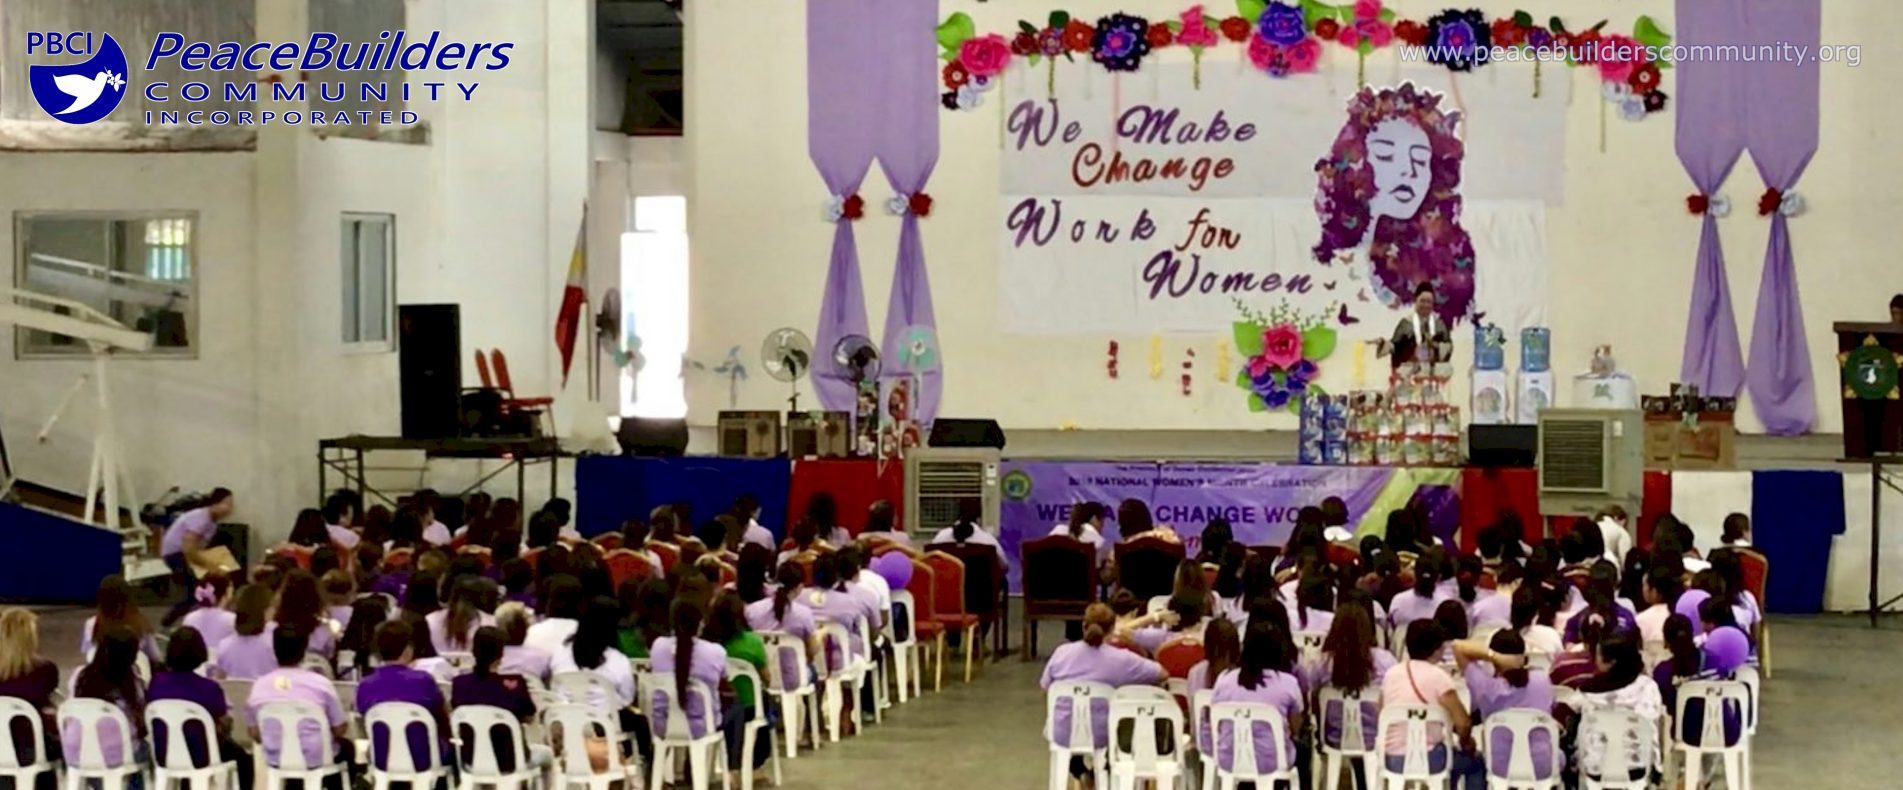 joji-davao-occ-womens-conference-2019